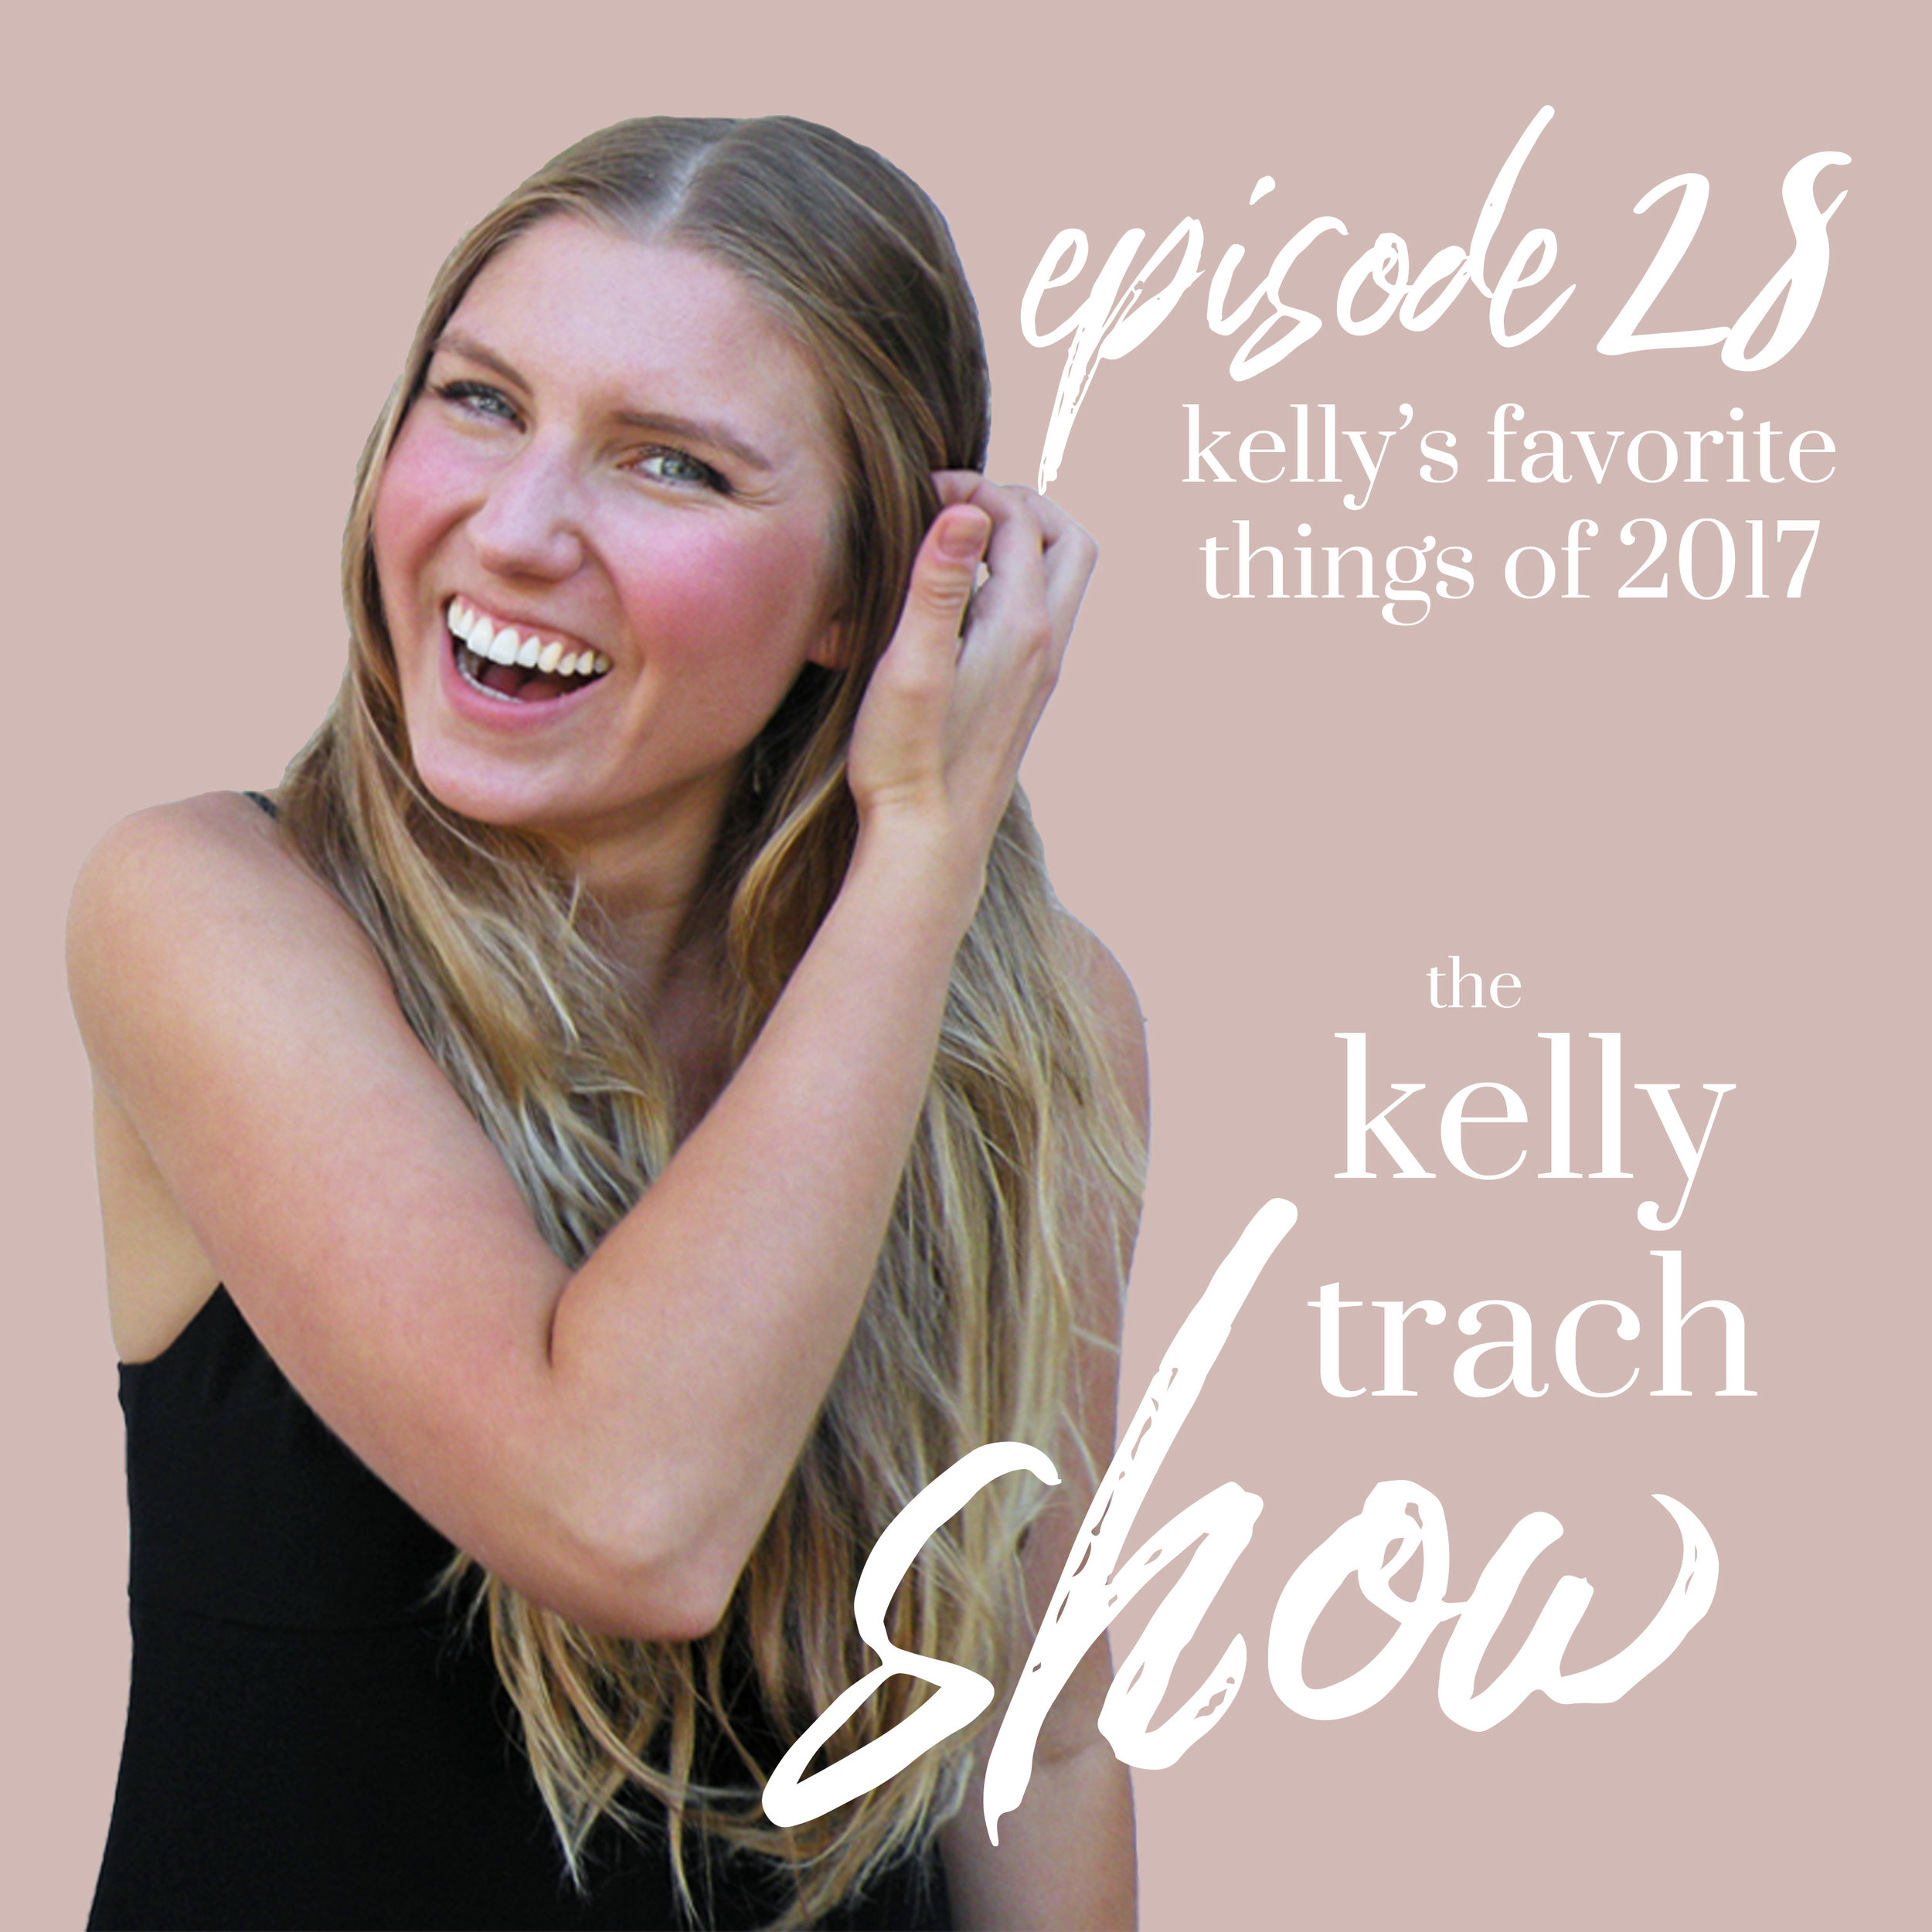 28 - Kelly's Favorite Things 2017 - The Kelly Trach Show.jpg